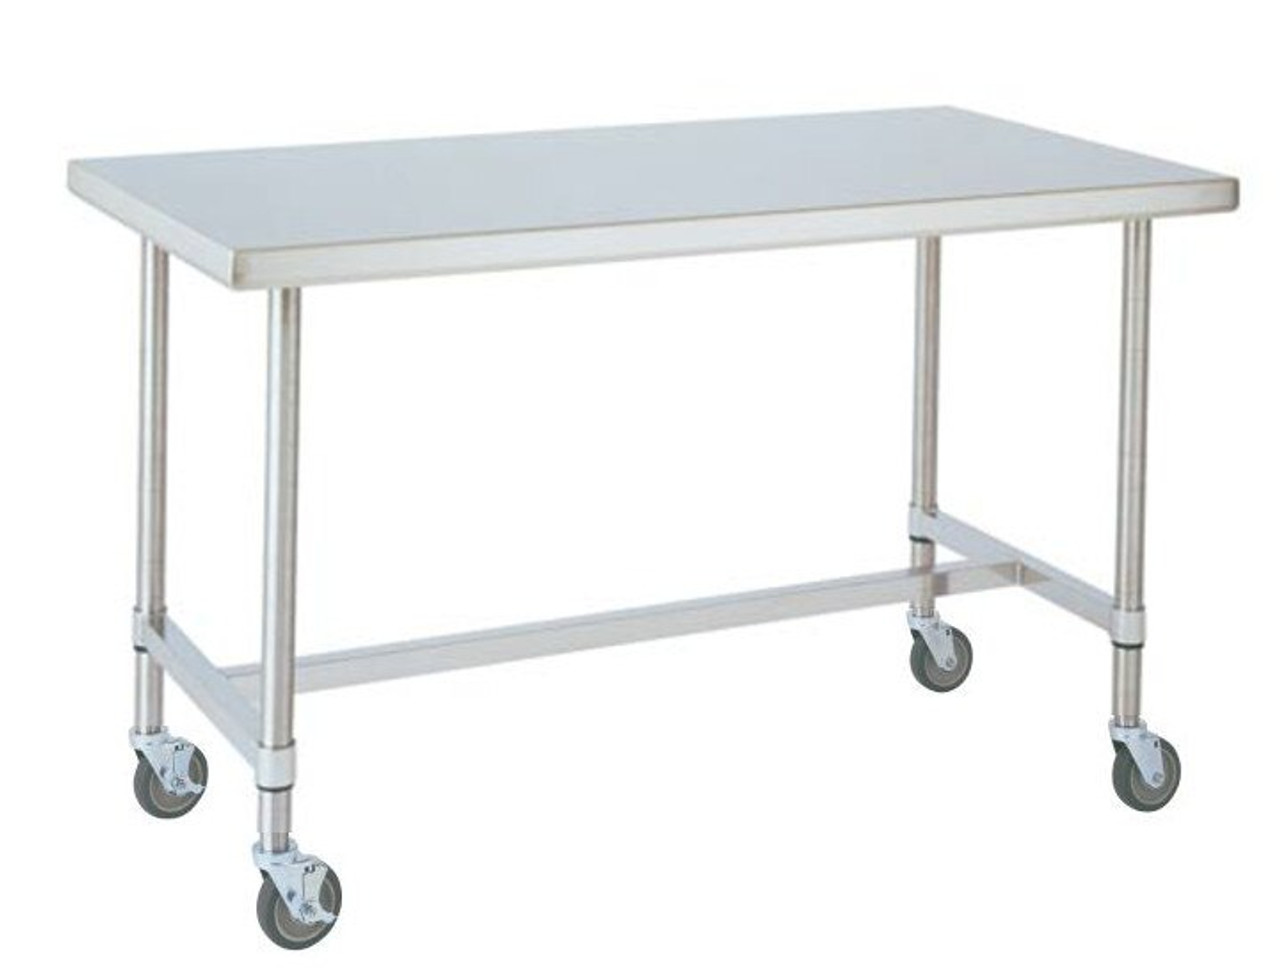 MWTHS Mobile Stainless Table DxWxH With HFrame - Stainless steel work table with casters